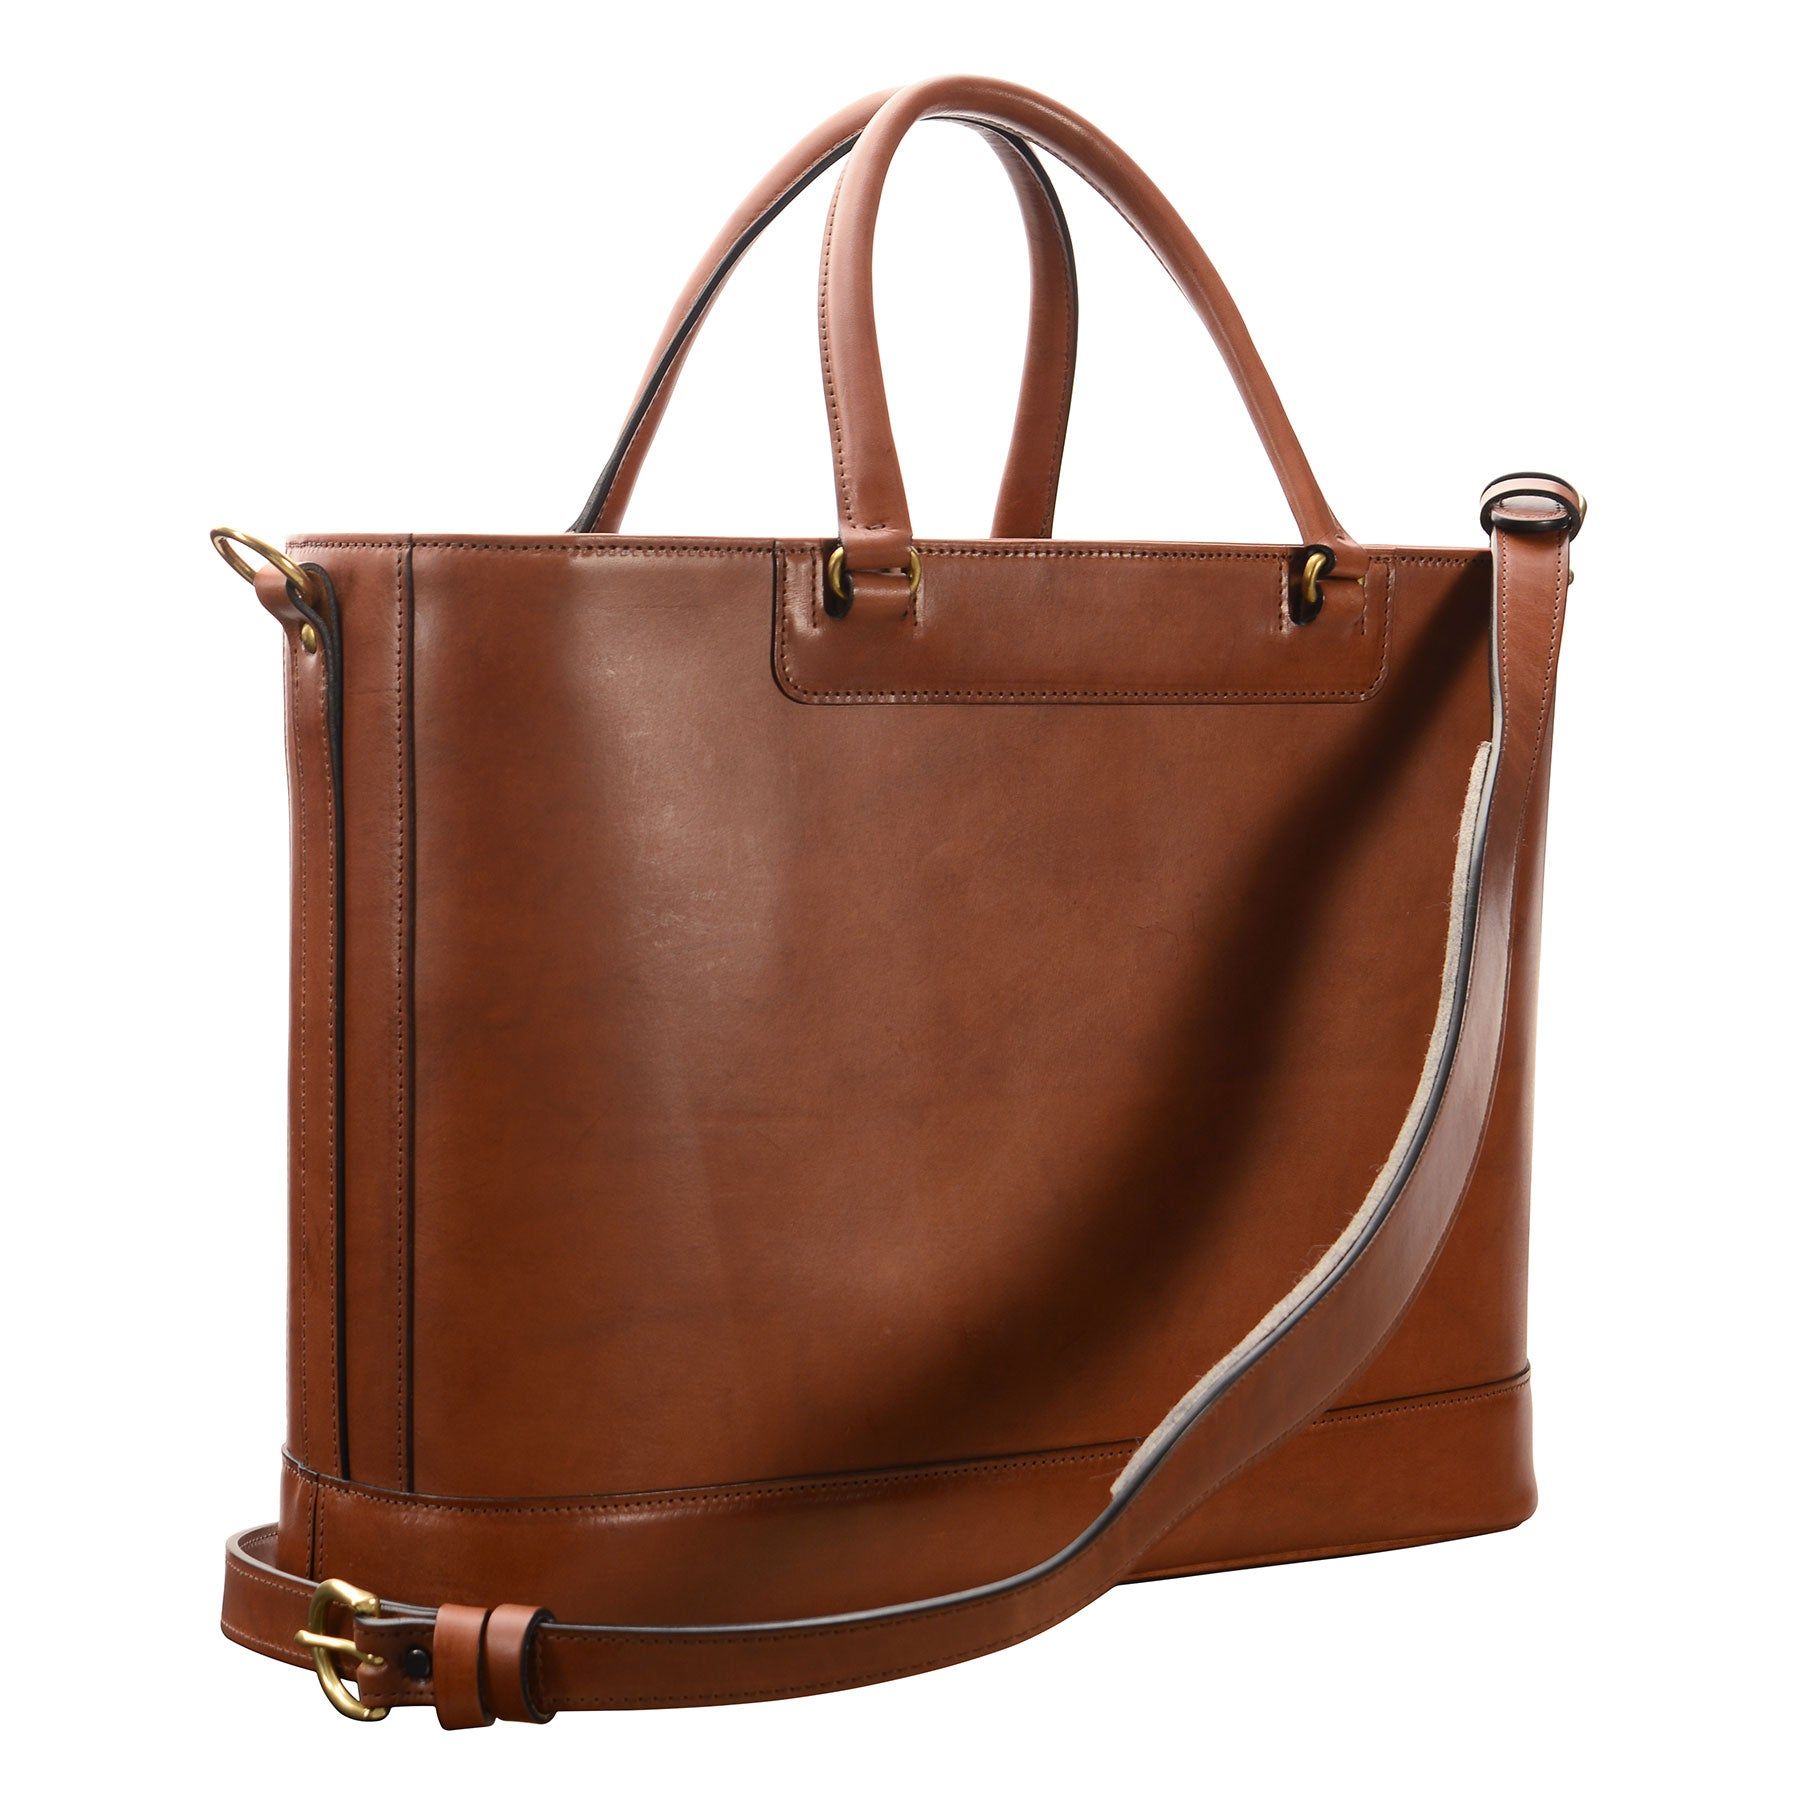 Glaser Designs Business Tote with Handles and Shoulder strap. Hand burnished Espresso vegetable tanned leather. Solid brass hardware. Made to measure, custom sizes.